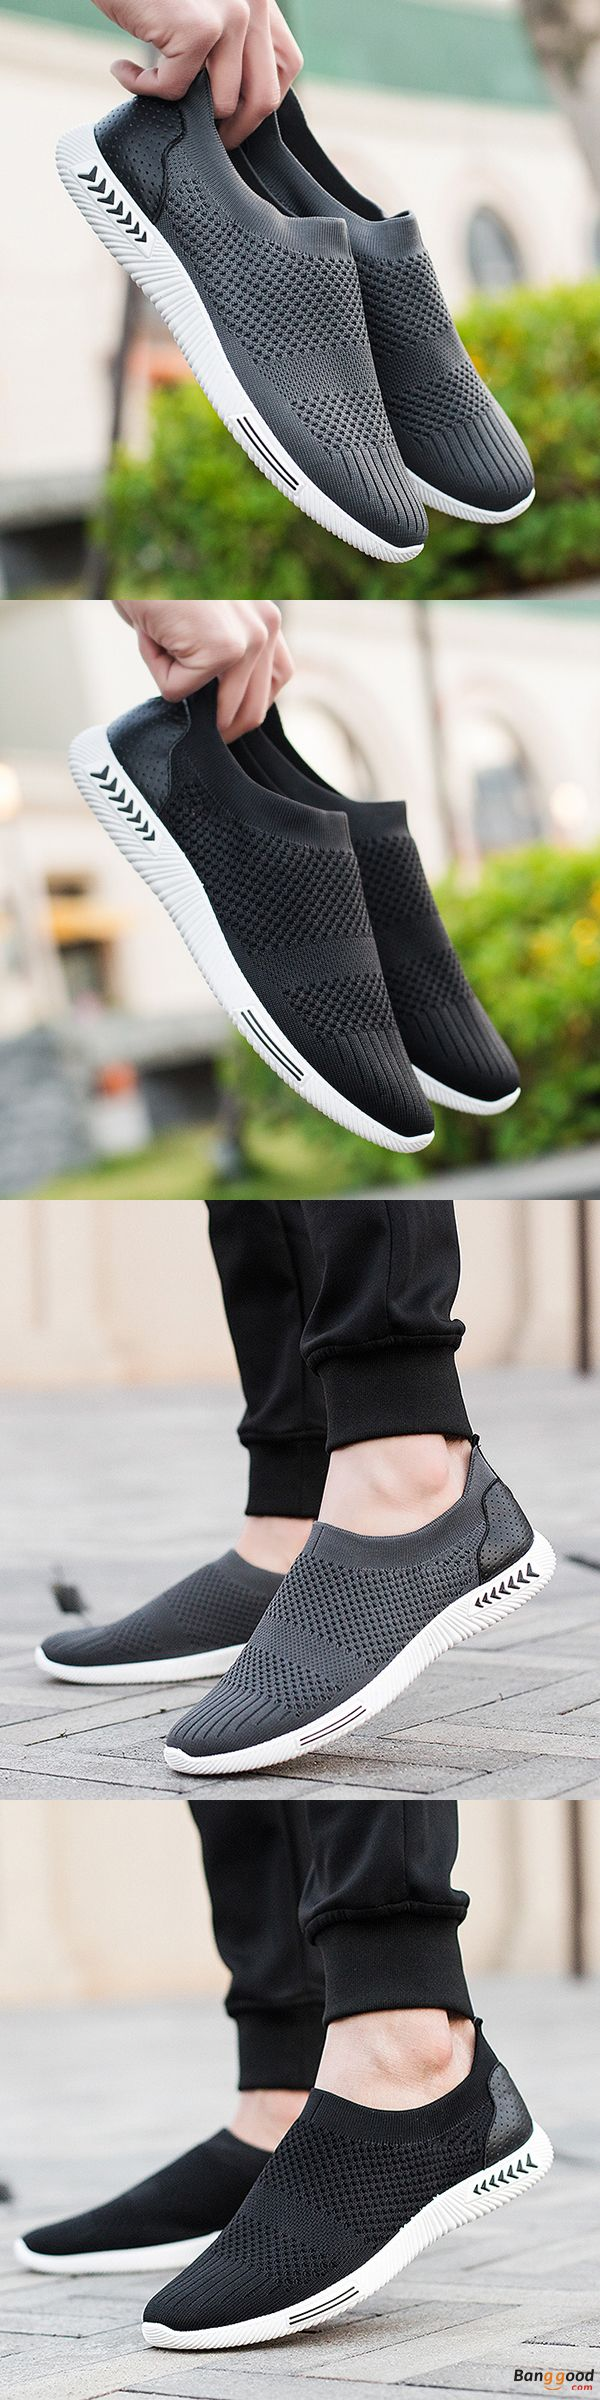 US$24.88 + Free shipping. Sneaker, Reasonable Shoes, Men Shoes, Mesh Shoes, Brea...